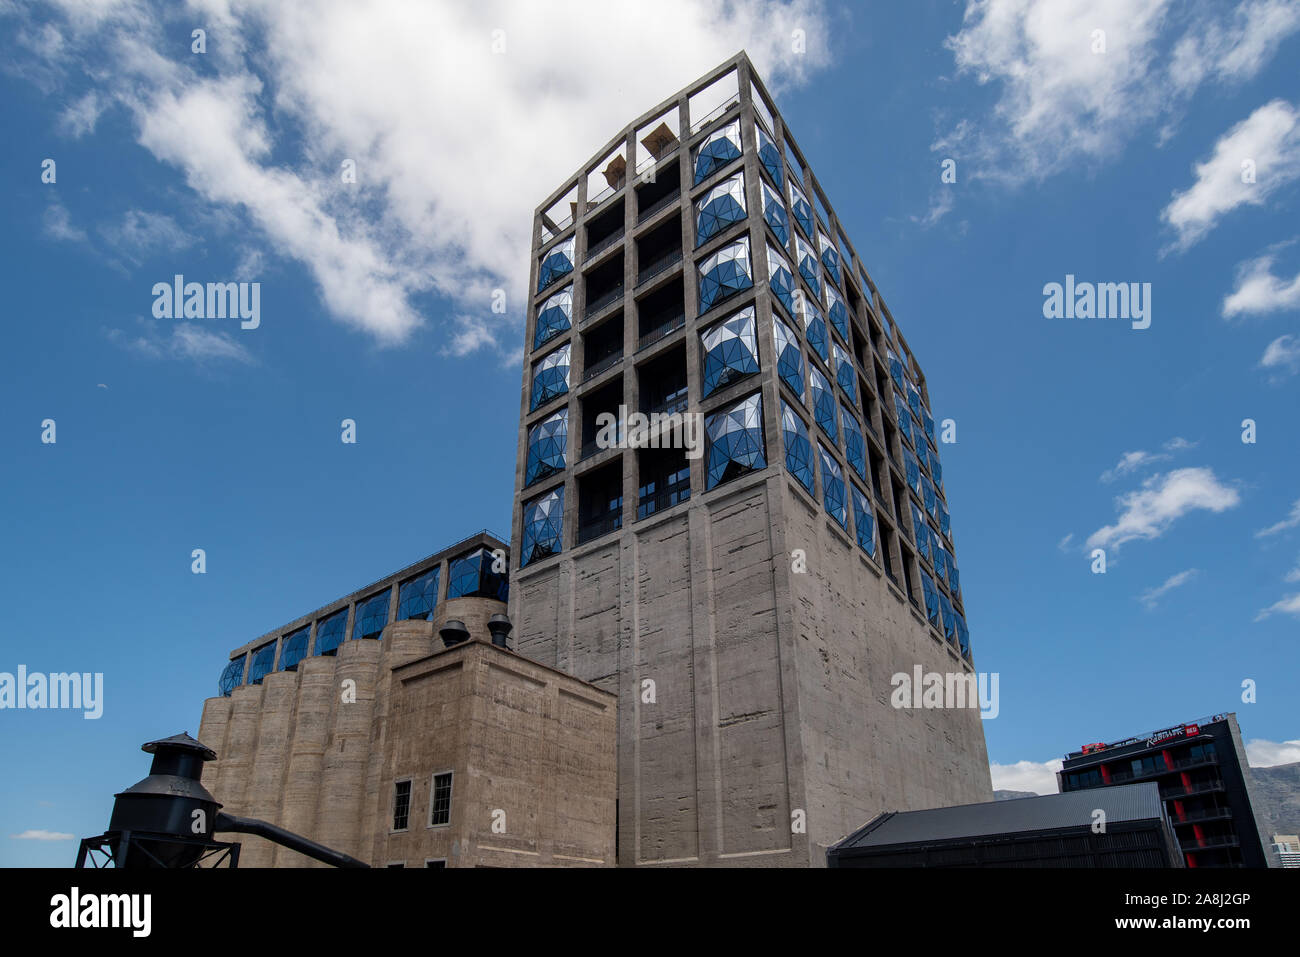 External view of Zeitz MOCAA Museum of Contemporary Art Africa, Cape Town, South Africa Stock Photo